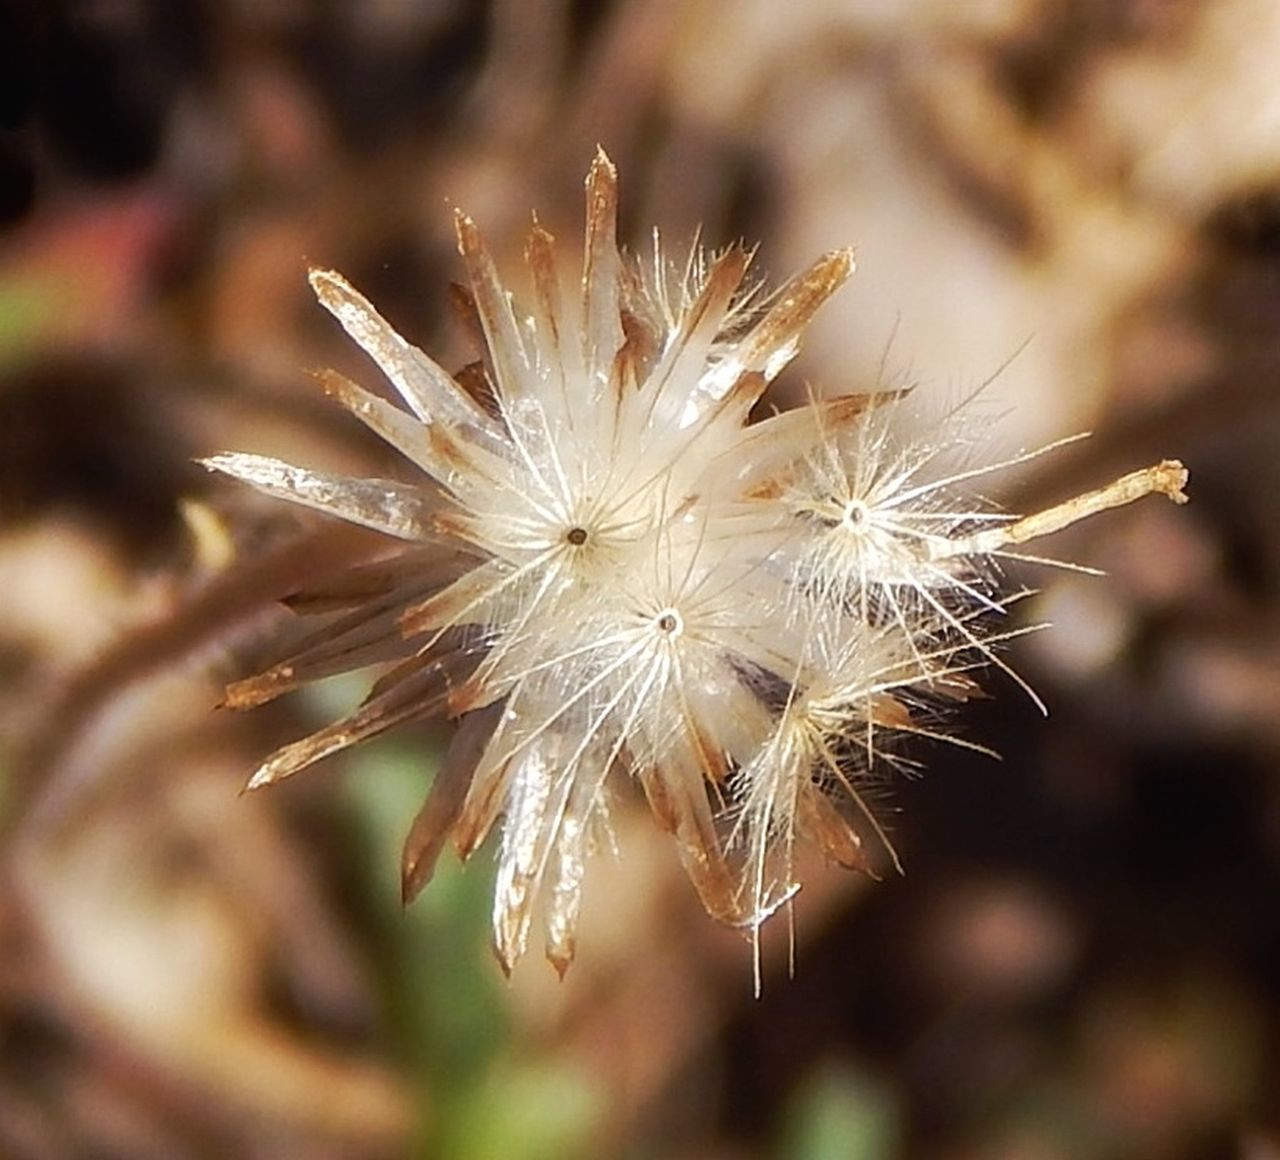 dandelion, flower, fragility, dandelion seed, focus on foreground, softness, nature, flower head, close-up, plant, growth, wildflower, beauty in nature, uncultivated, no people, day, freshness, outdoors